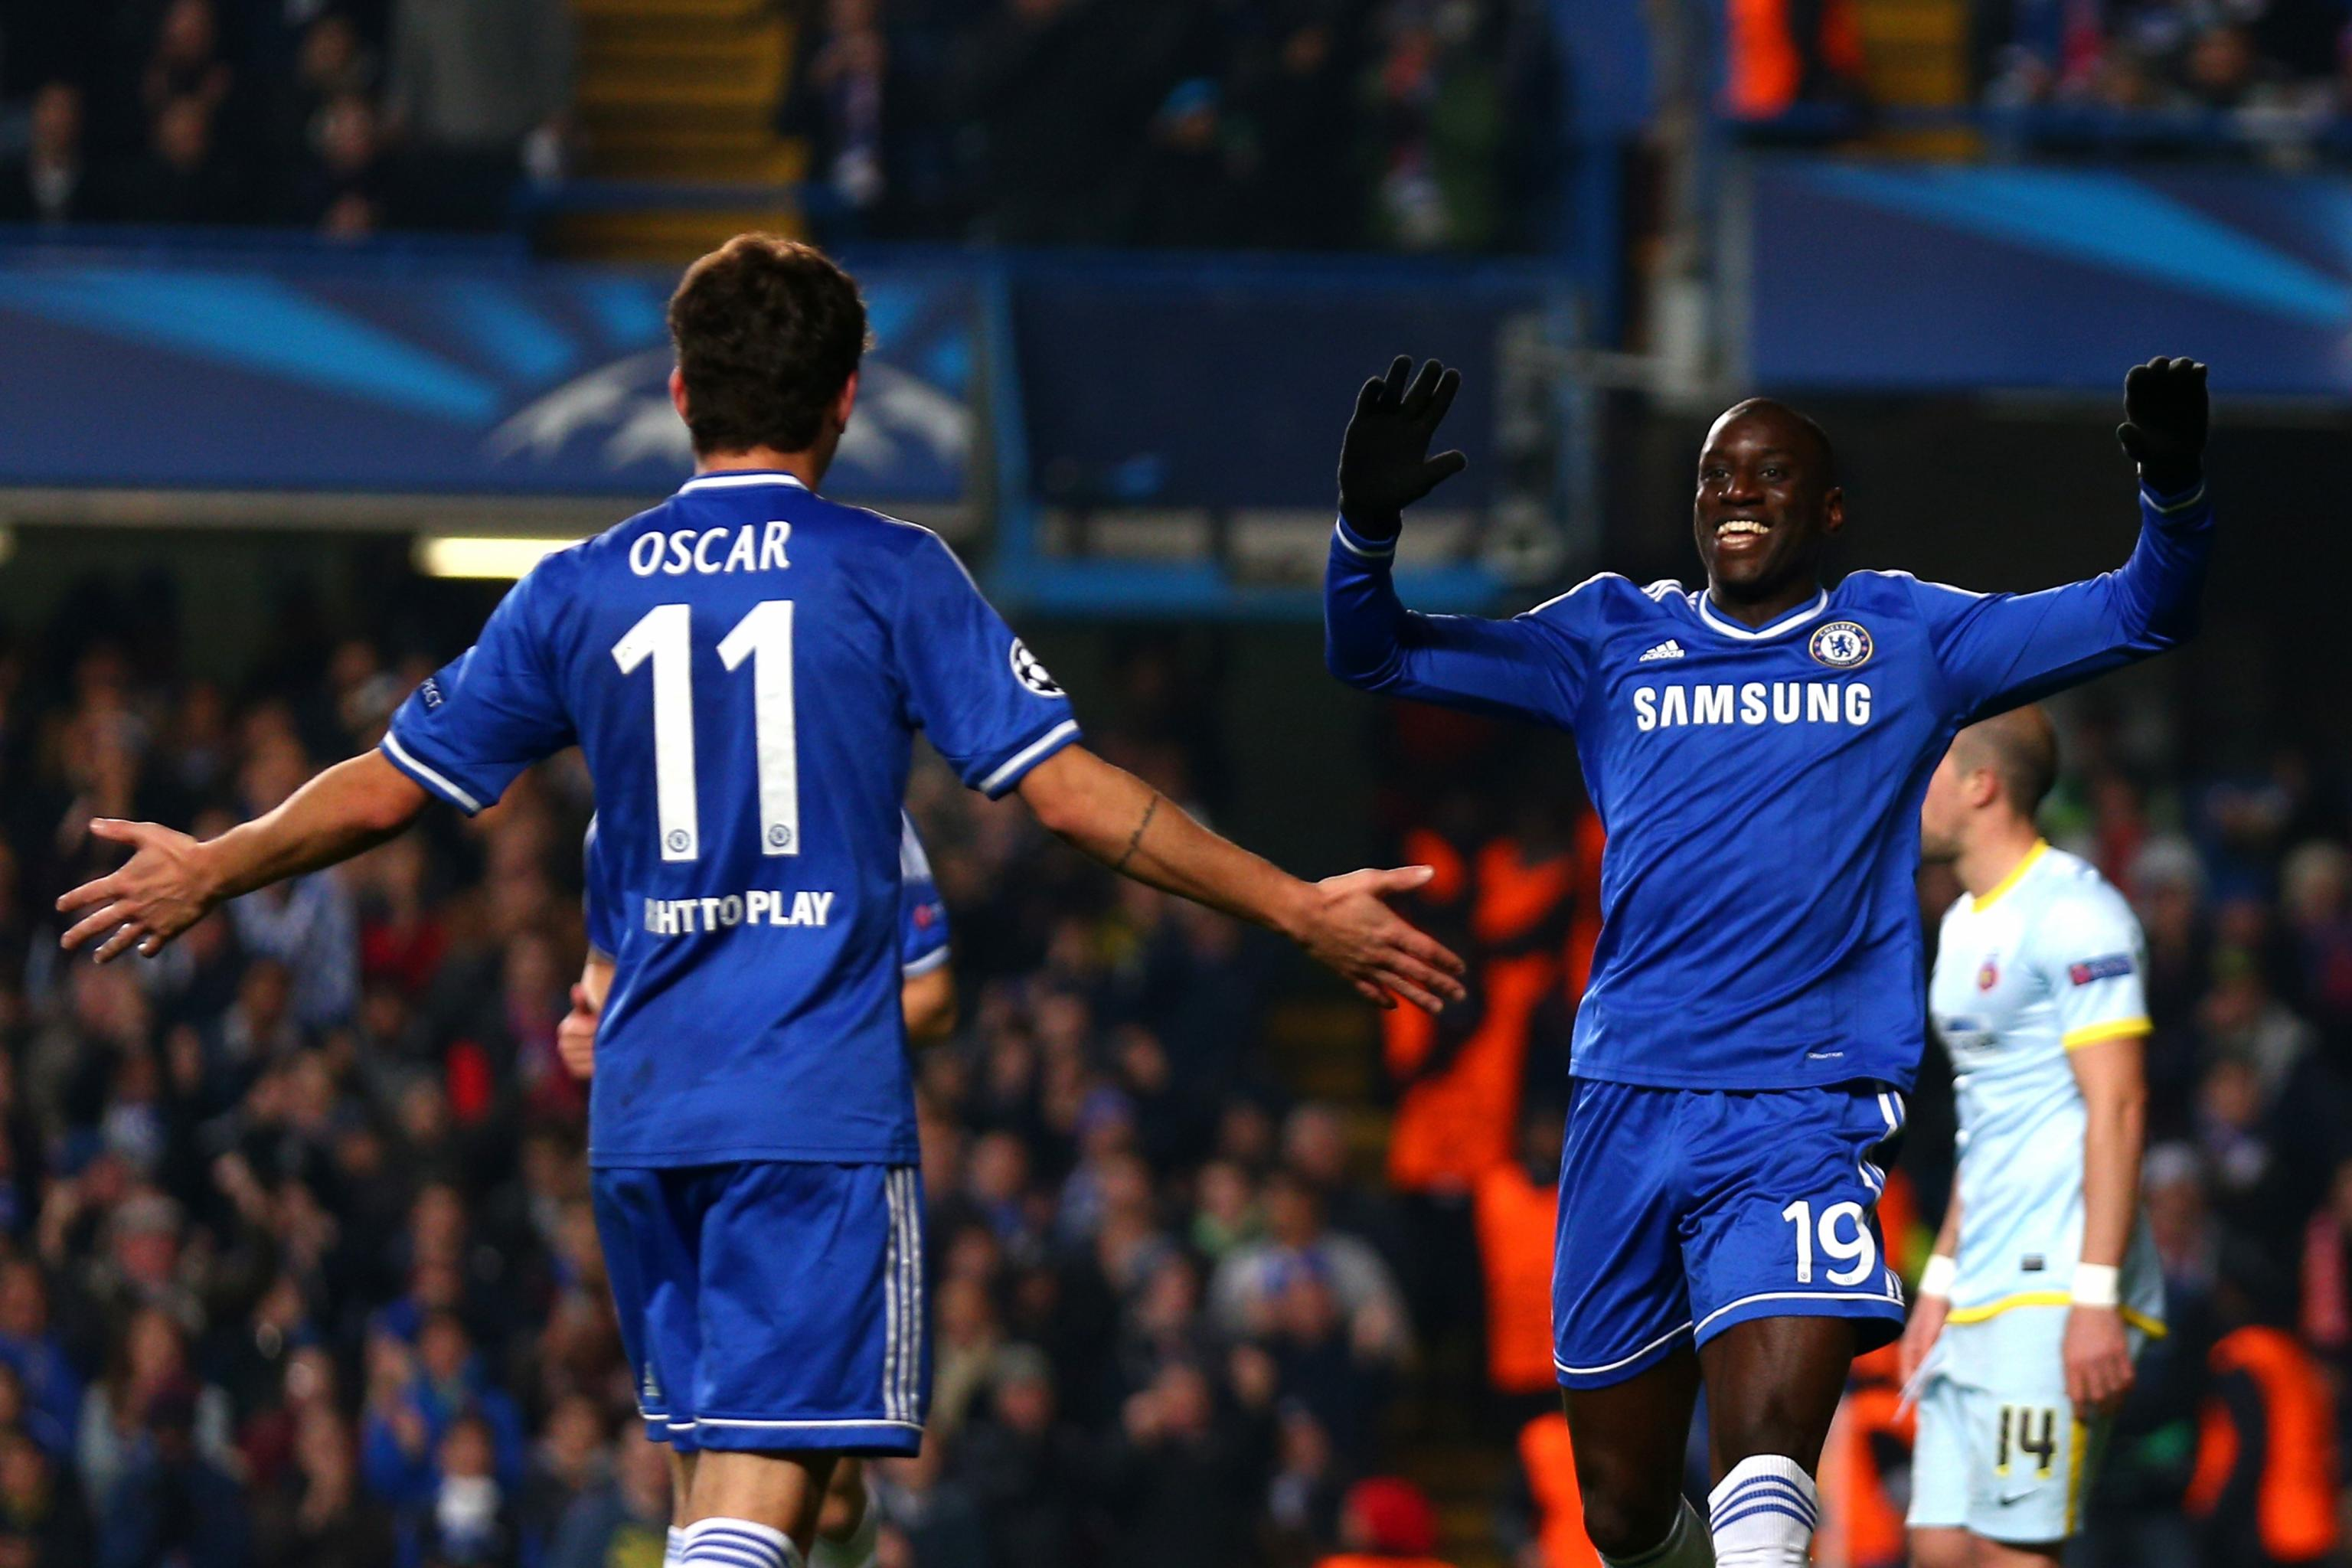 Chelsea Vs Crystal Palace Date Time Live Stream Tv Info And Preview Bleacher Report Latest News Videos And Highlights